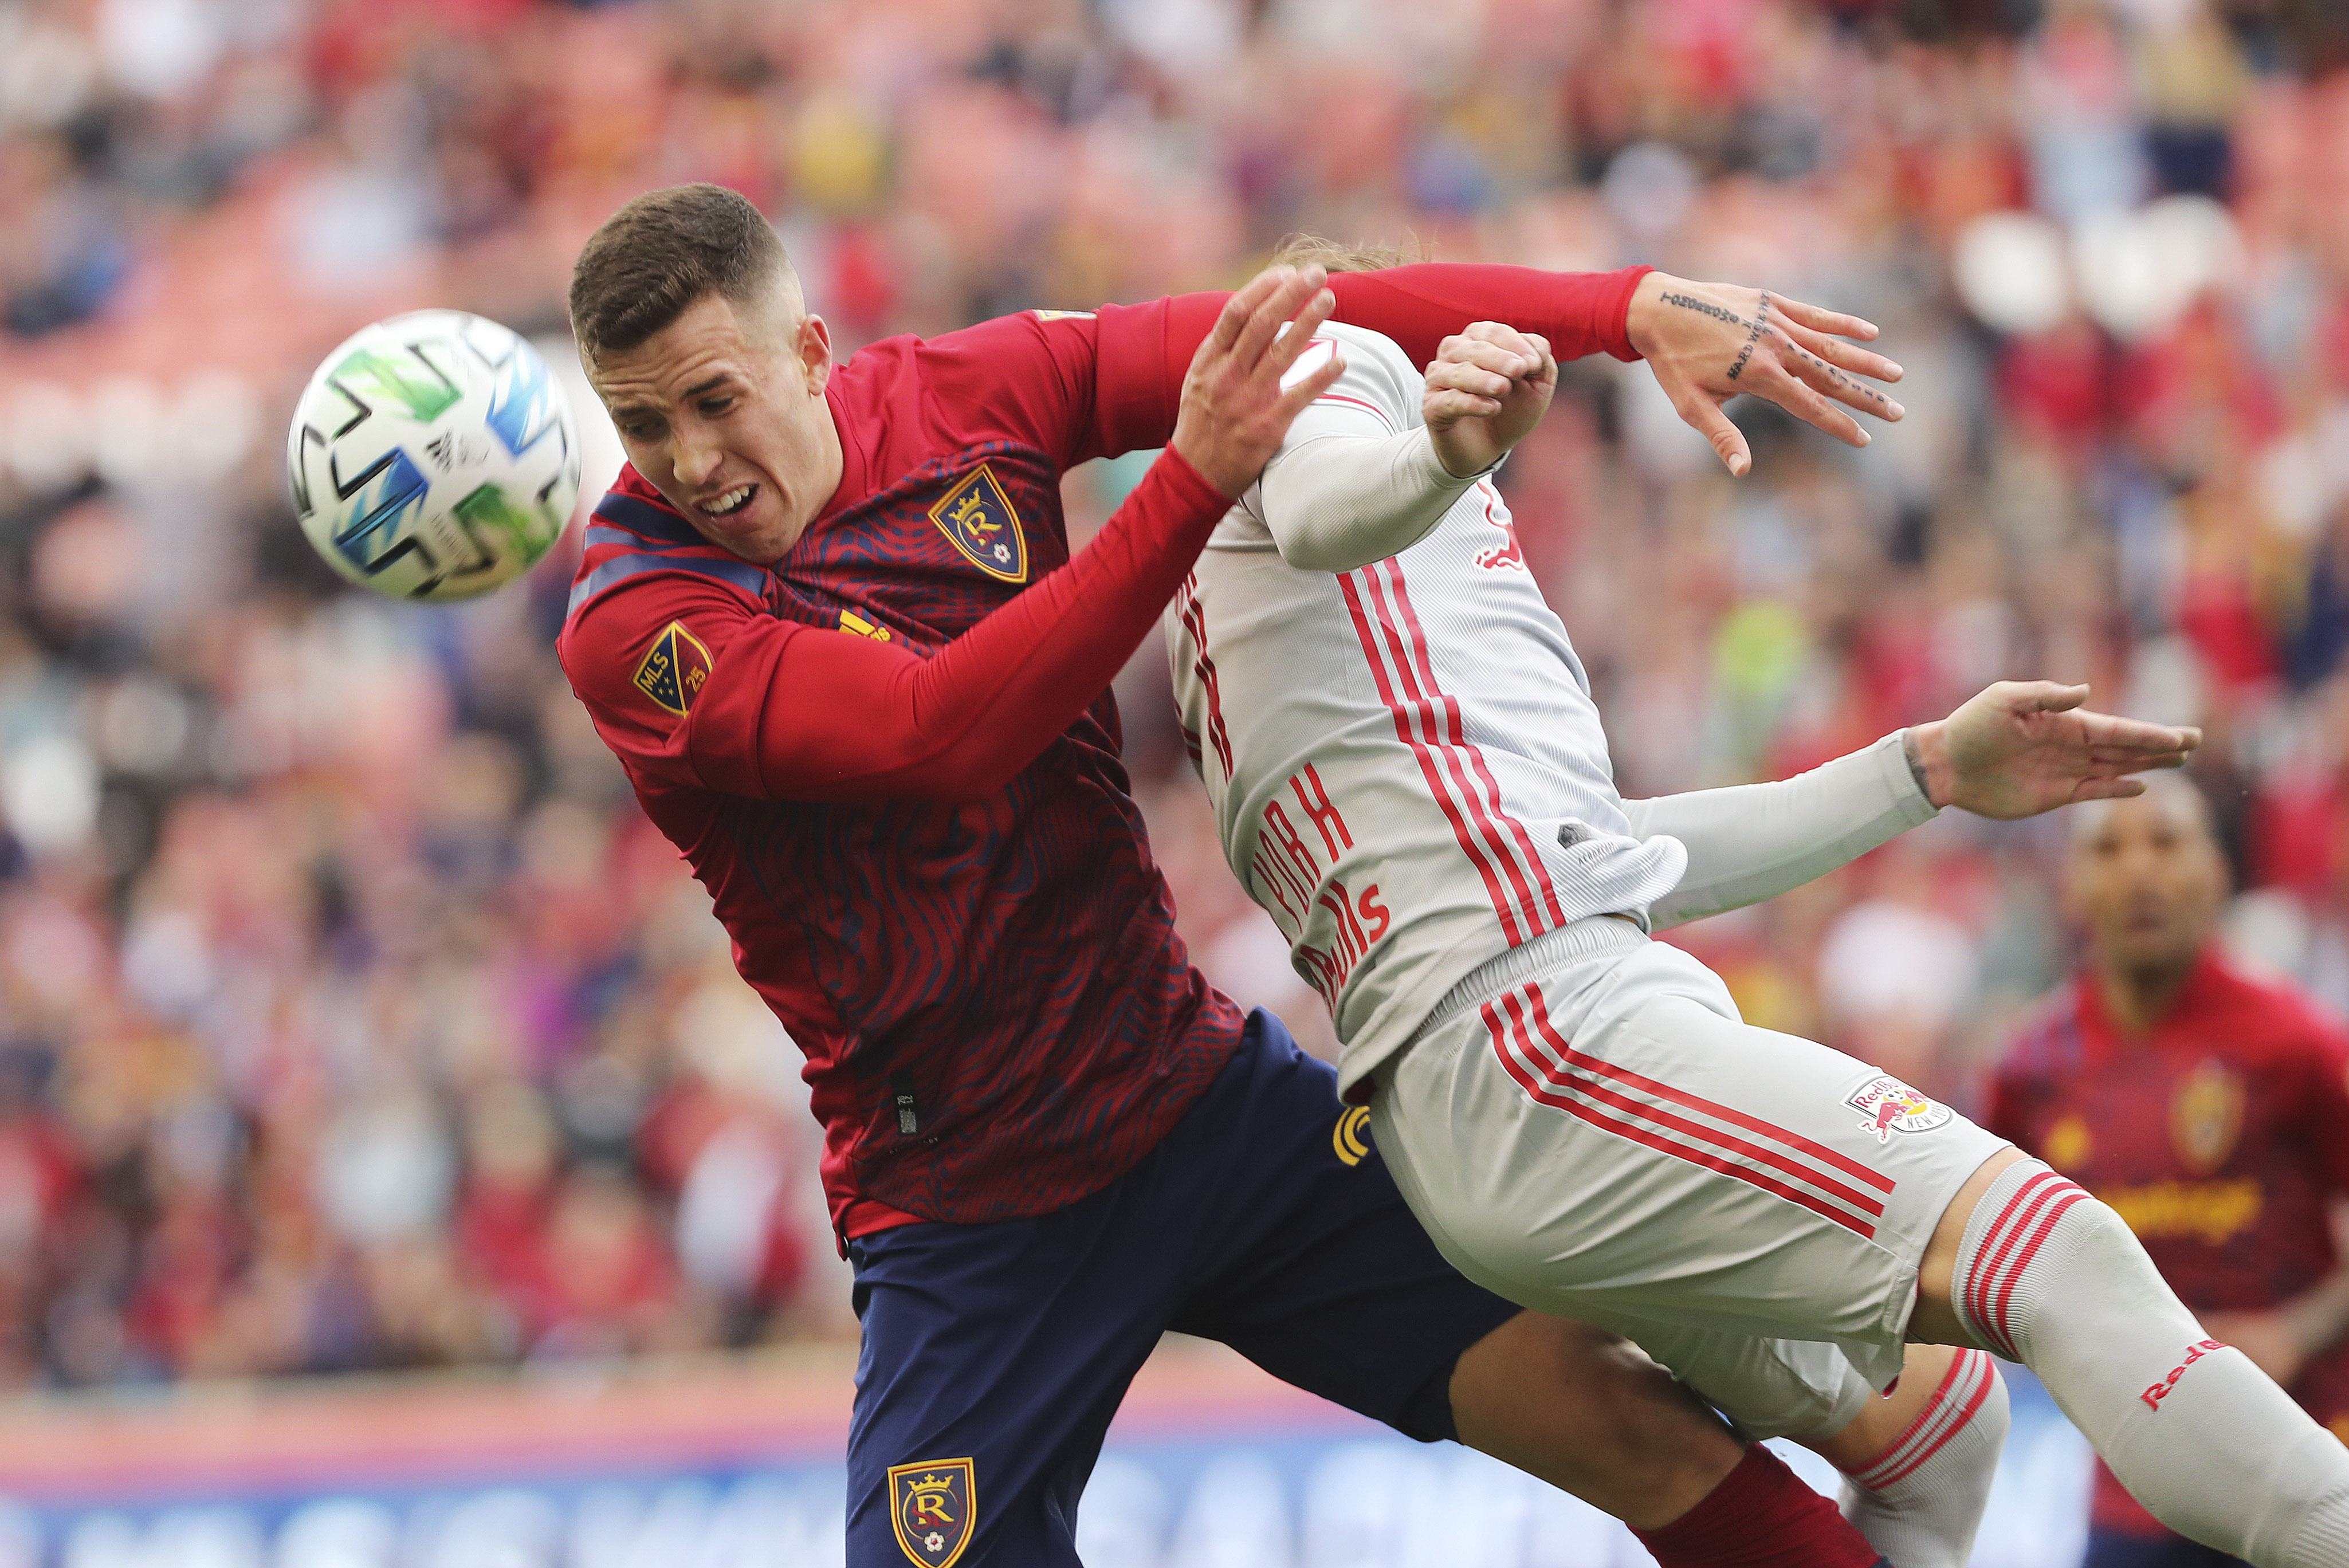 Real Salt Lake forward AaronHerrera (22) and New York City defender Patrick Seagrist compete in Sandy on Saturday, March 7, 2020. RSL tied with New York 1-1.